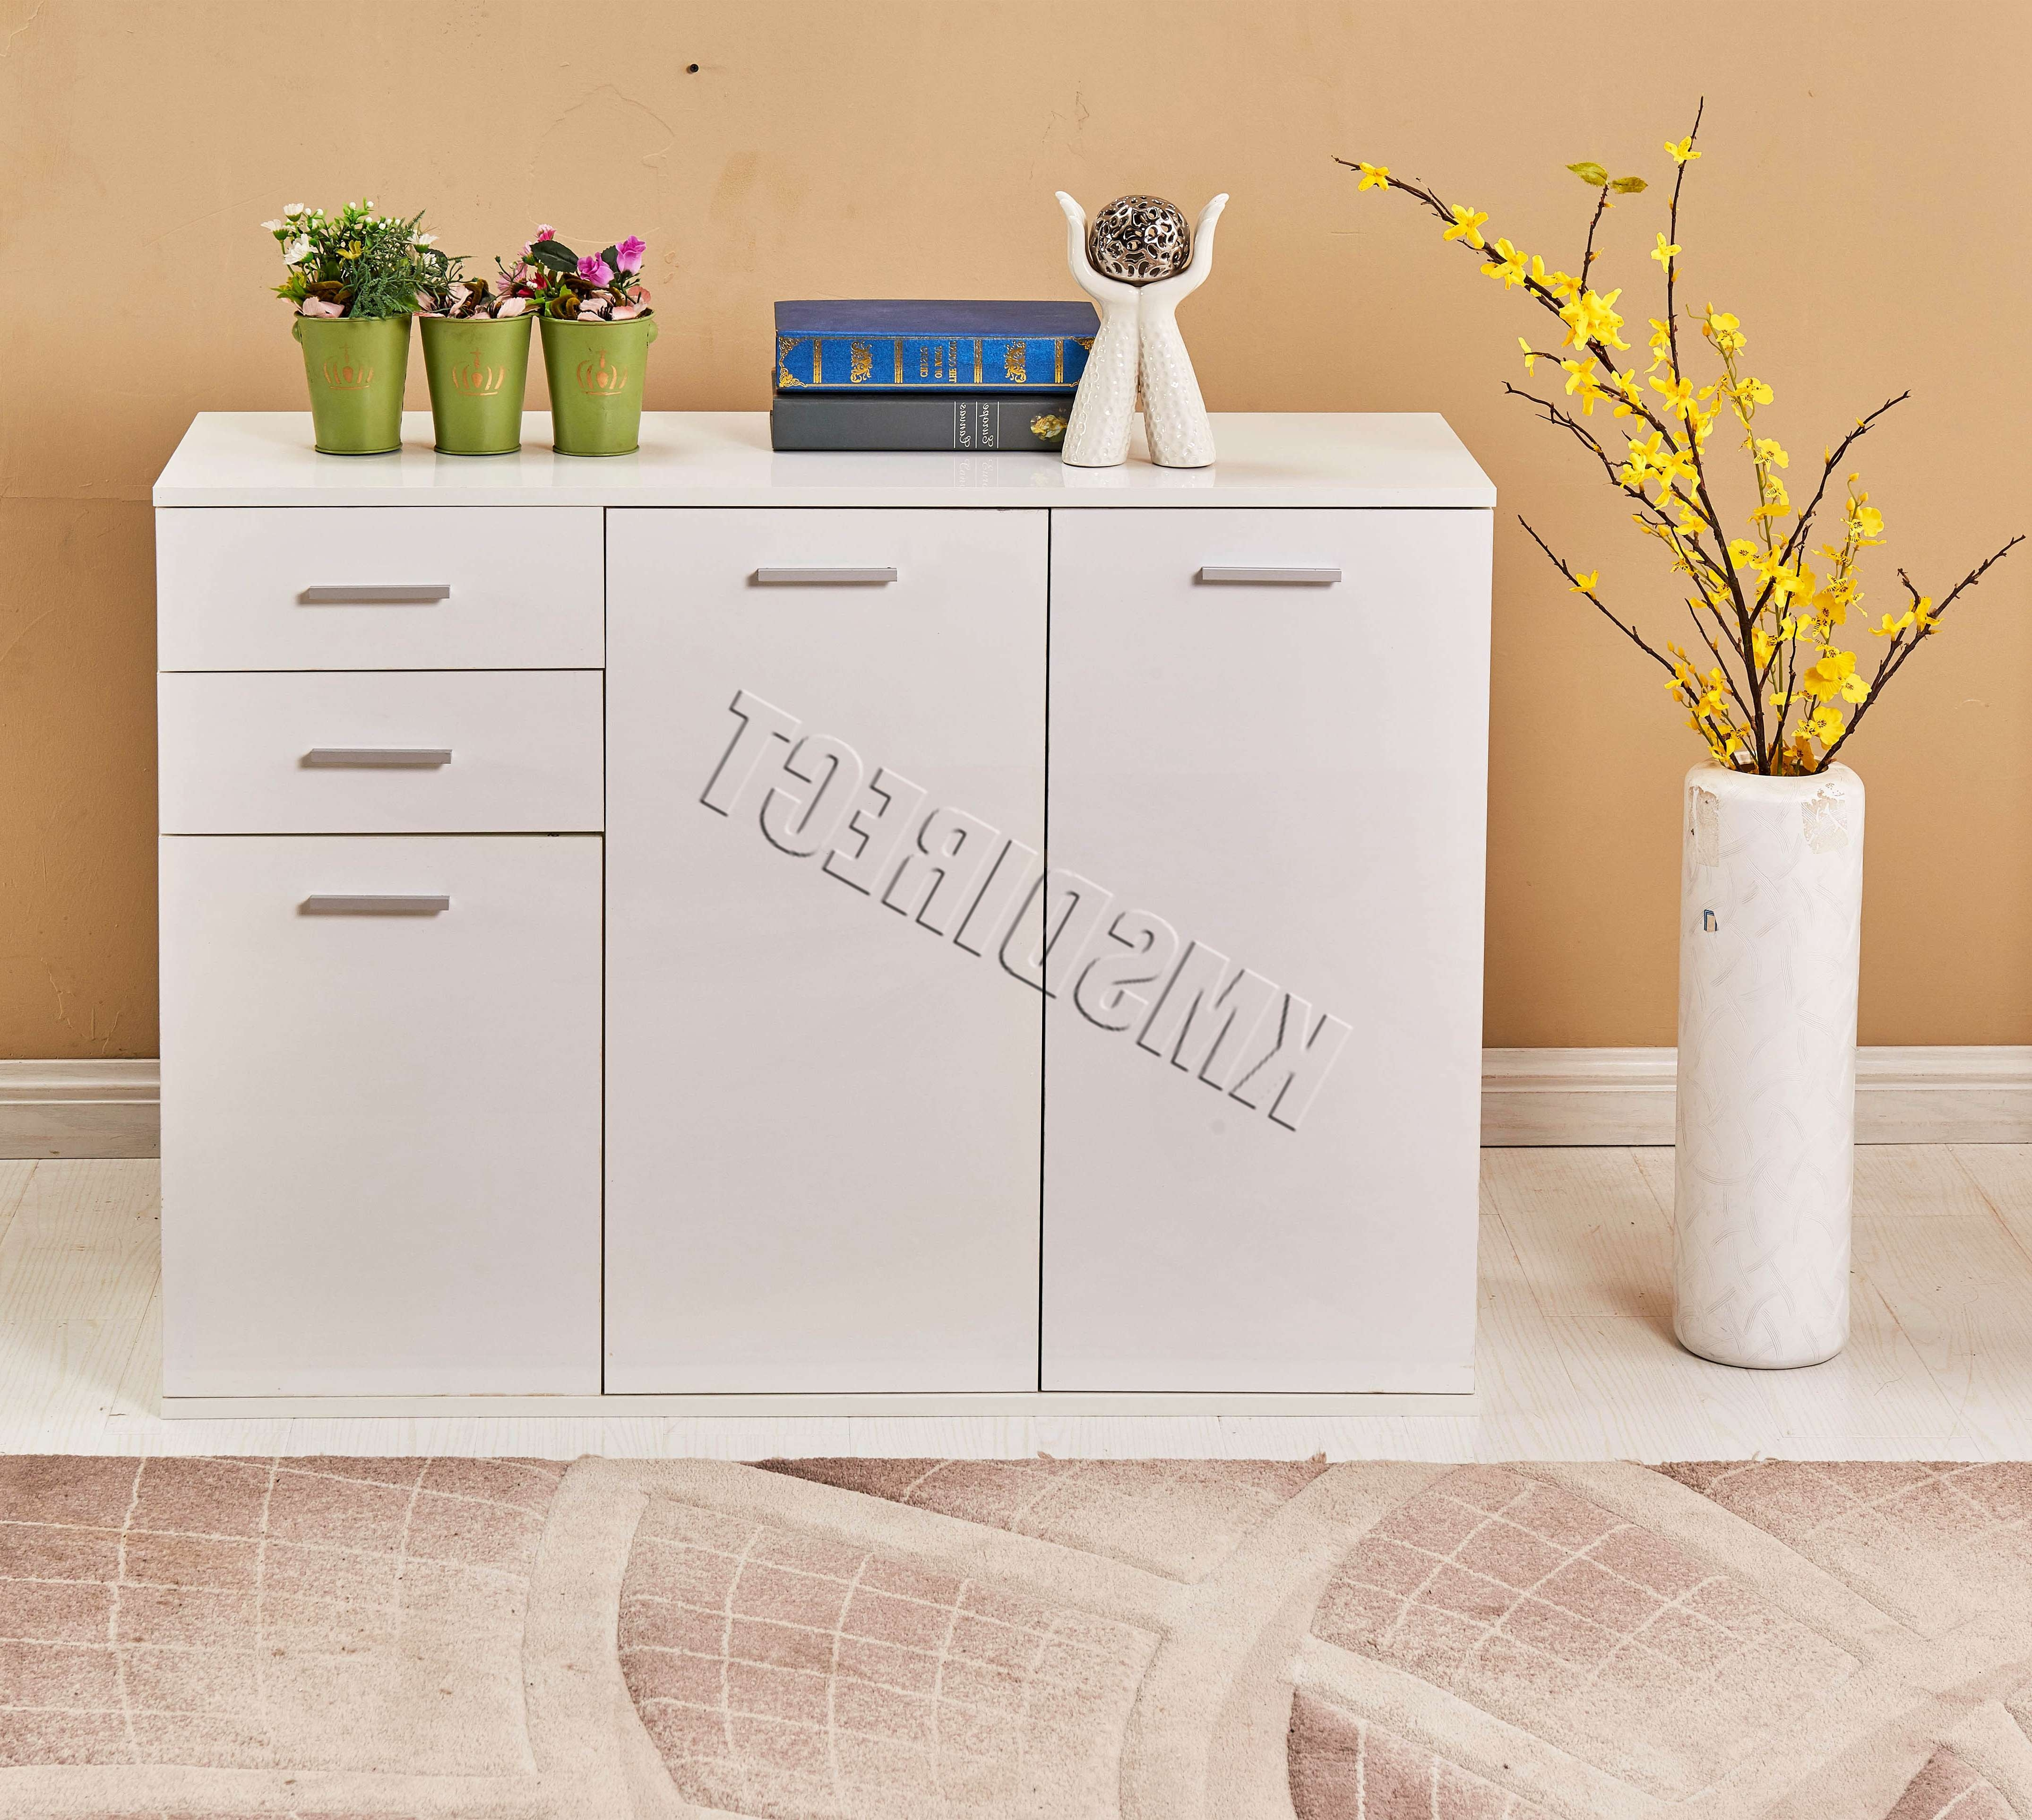 Foxhunter White High Gloss Cabinet Unit Sideboard 2 Drawers 2/3 Pertaining To White High Gloss Sideboards (View 19 of 20)